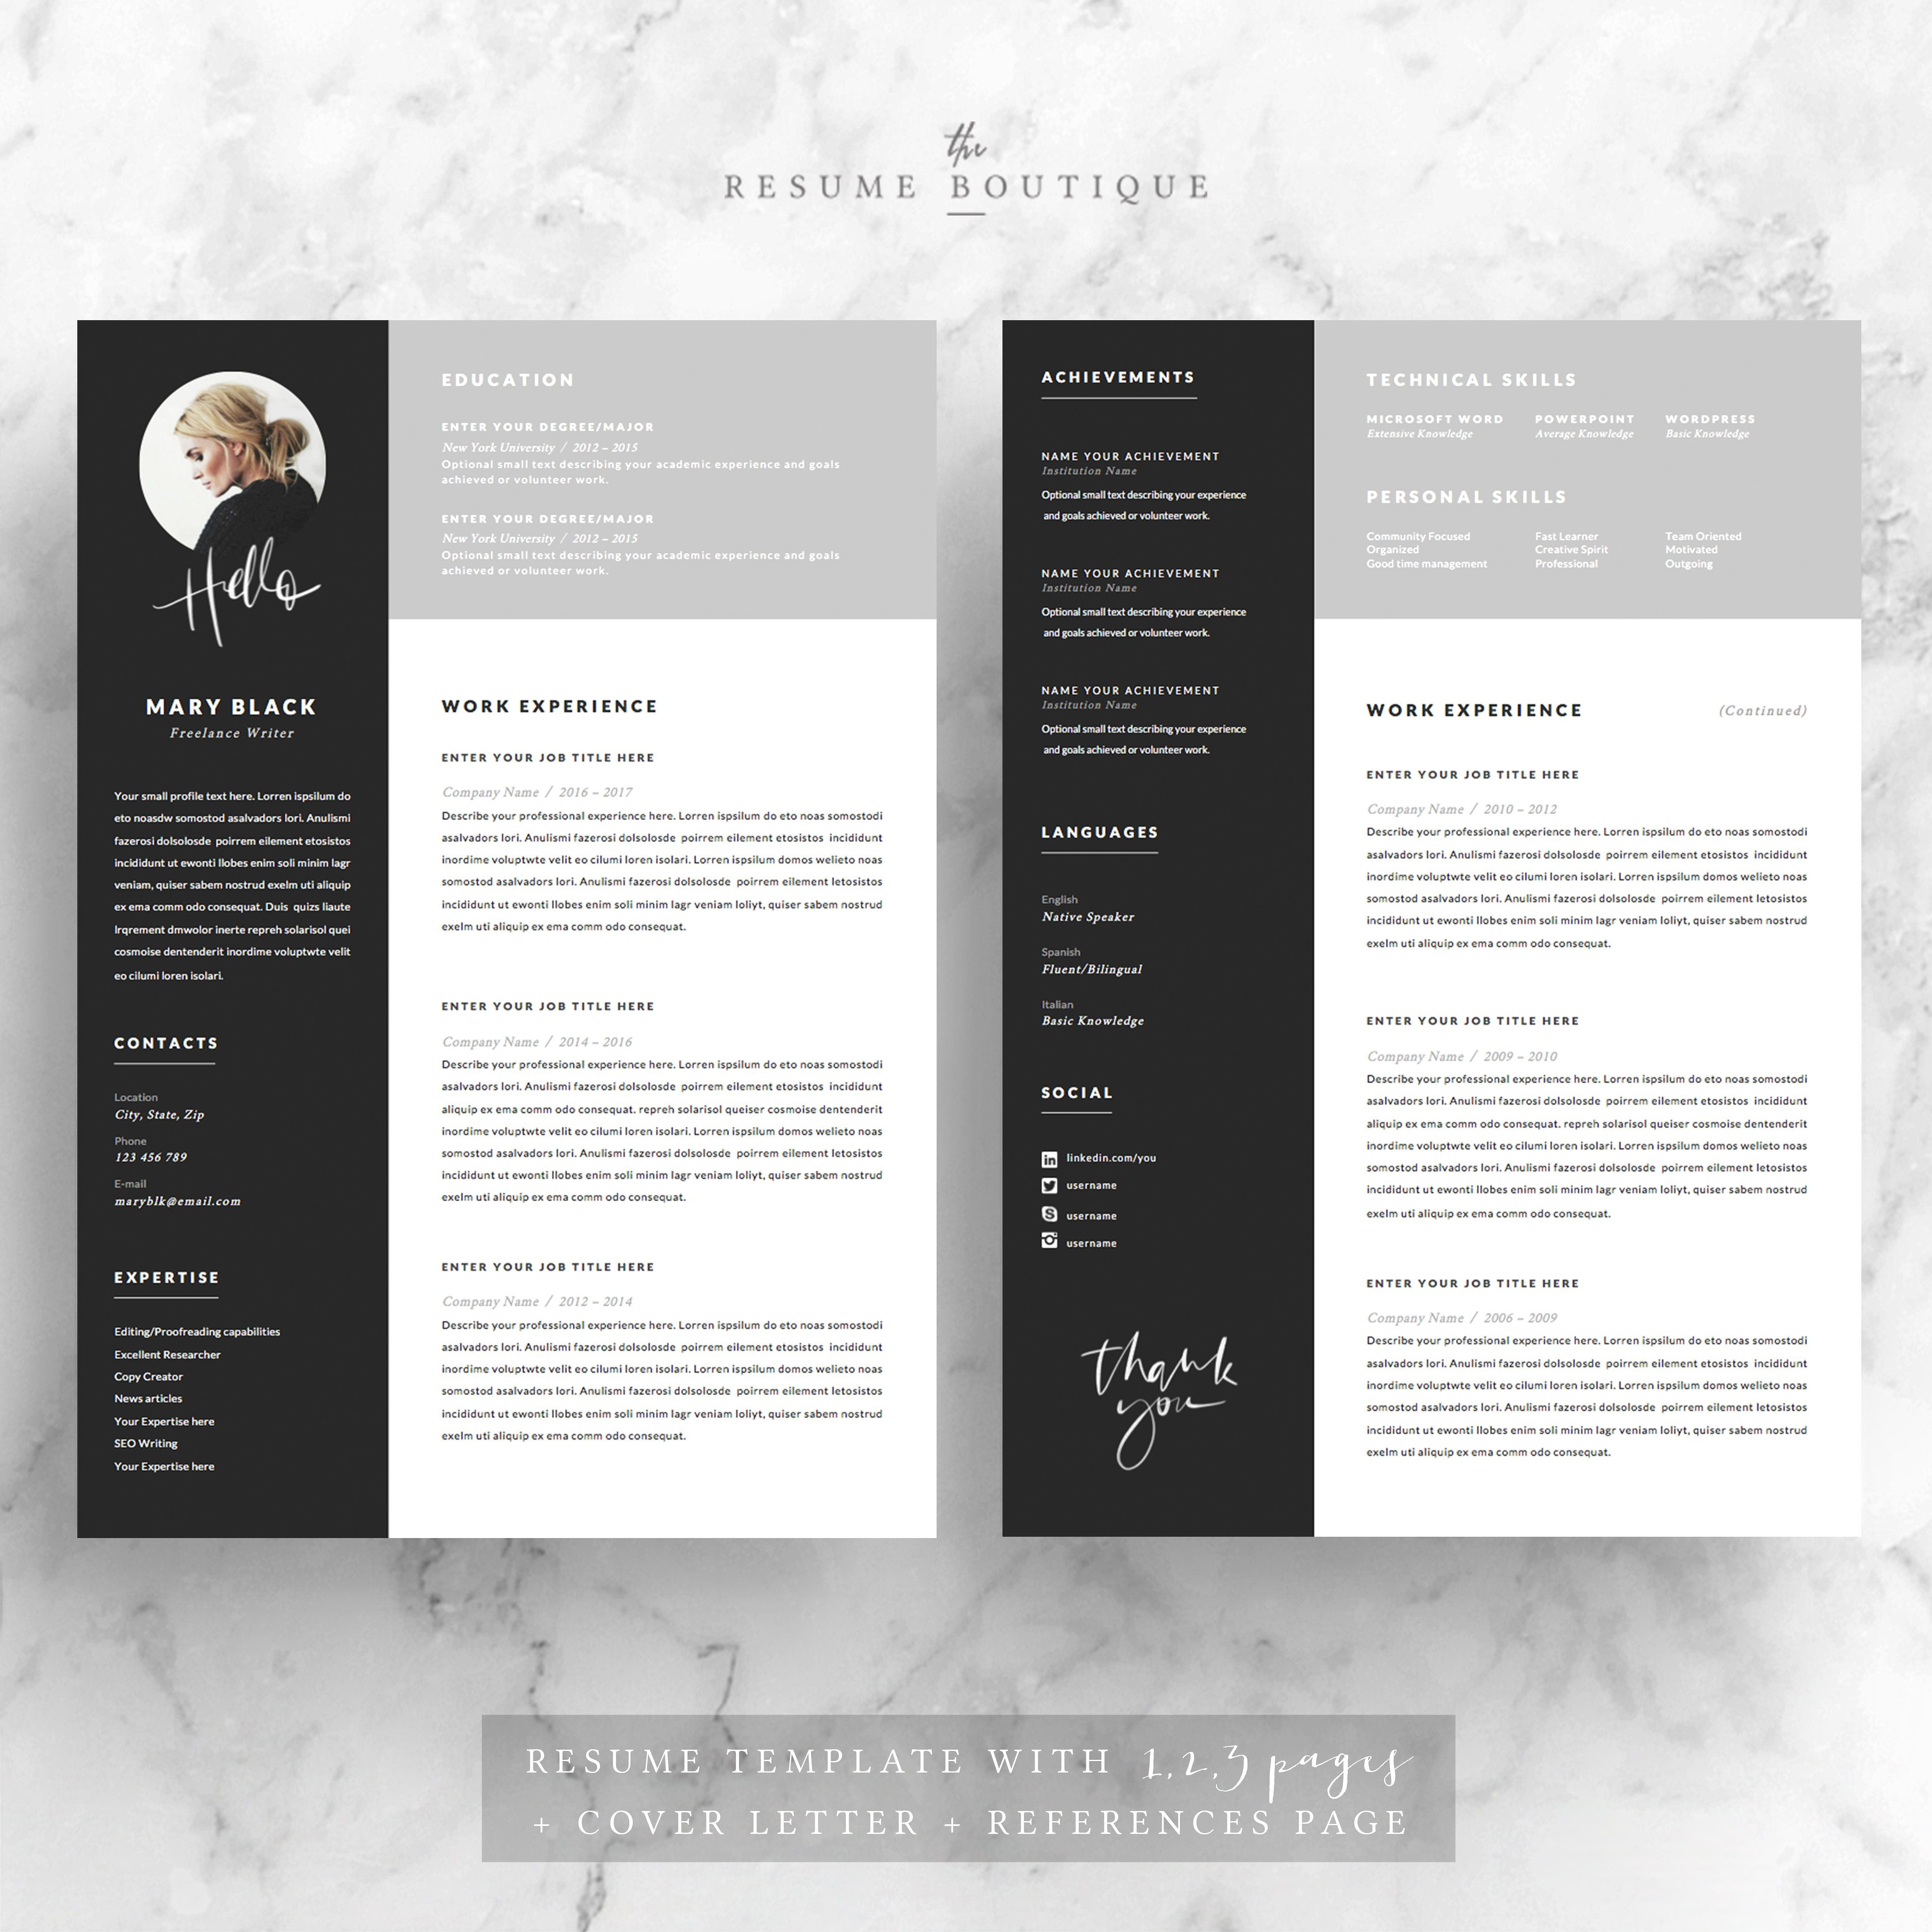 5 page Resume Template | Blackie by The.Resume.Boutique on ...